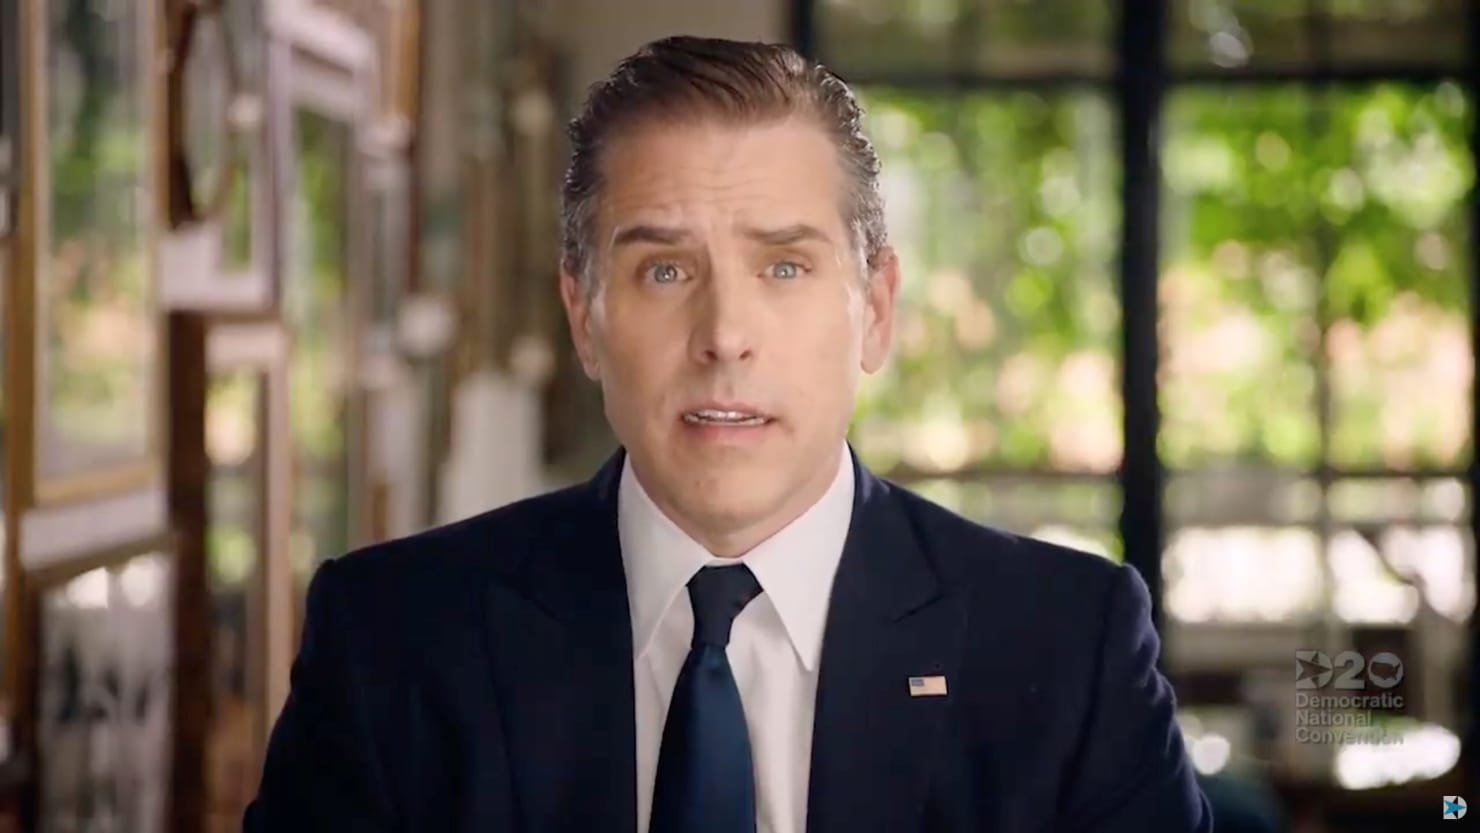 Trump Target Hunter Biden Comes Out of the Shadows for His Dad